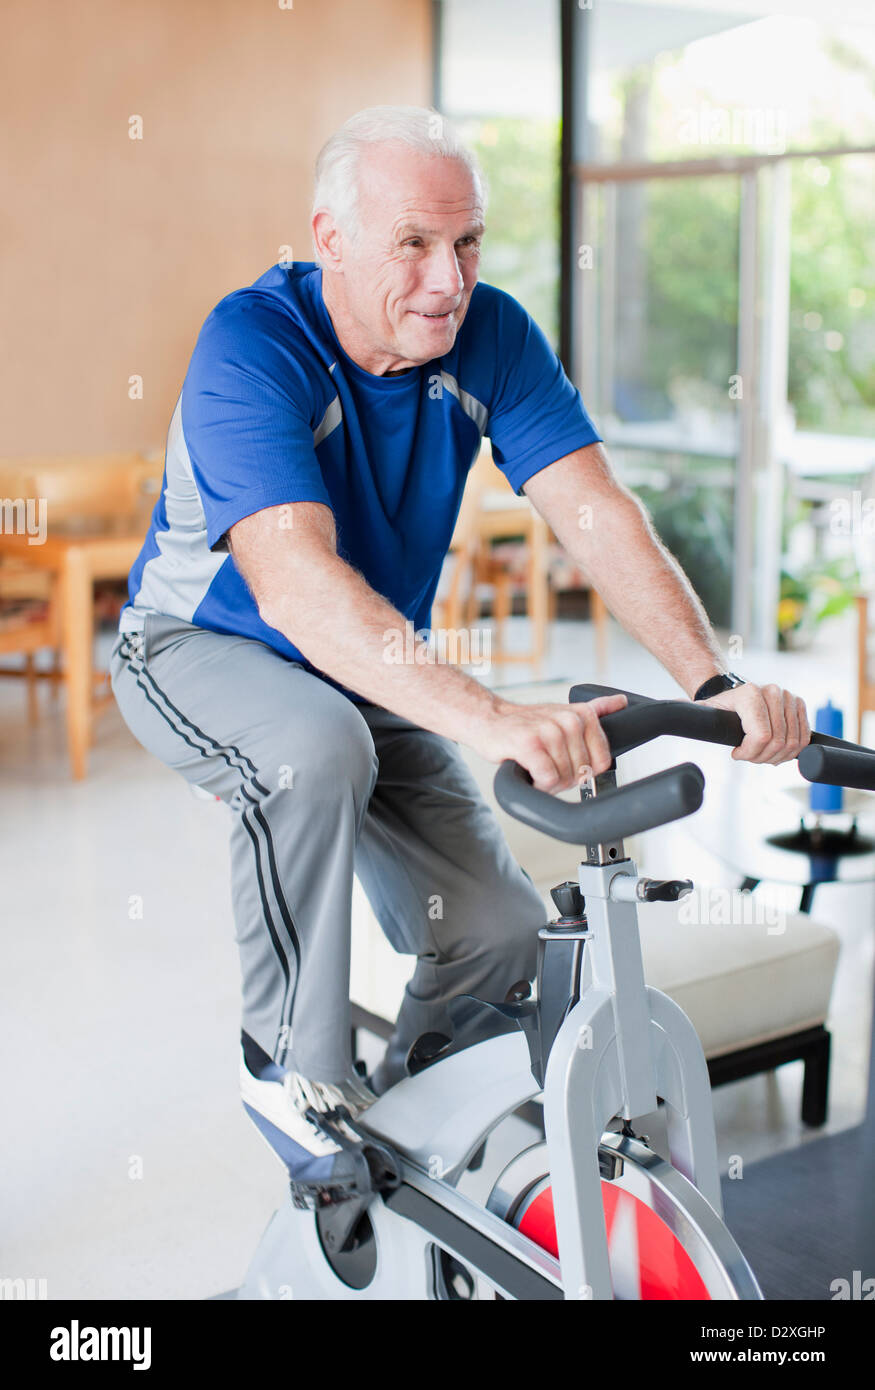 Older Man Riding Exercise Bike At Home Stock Photo